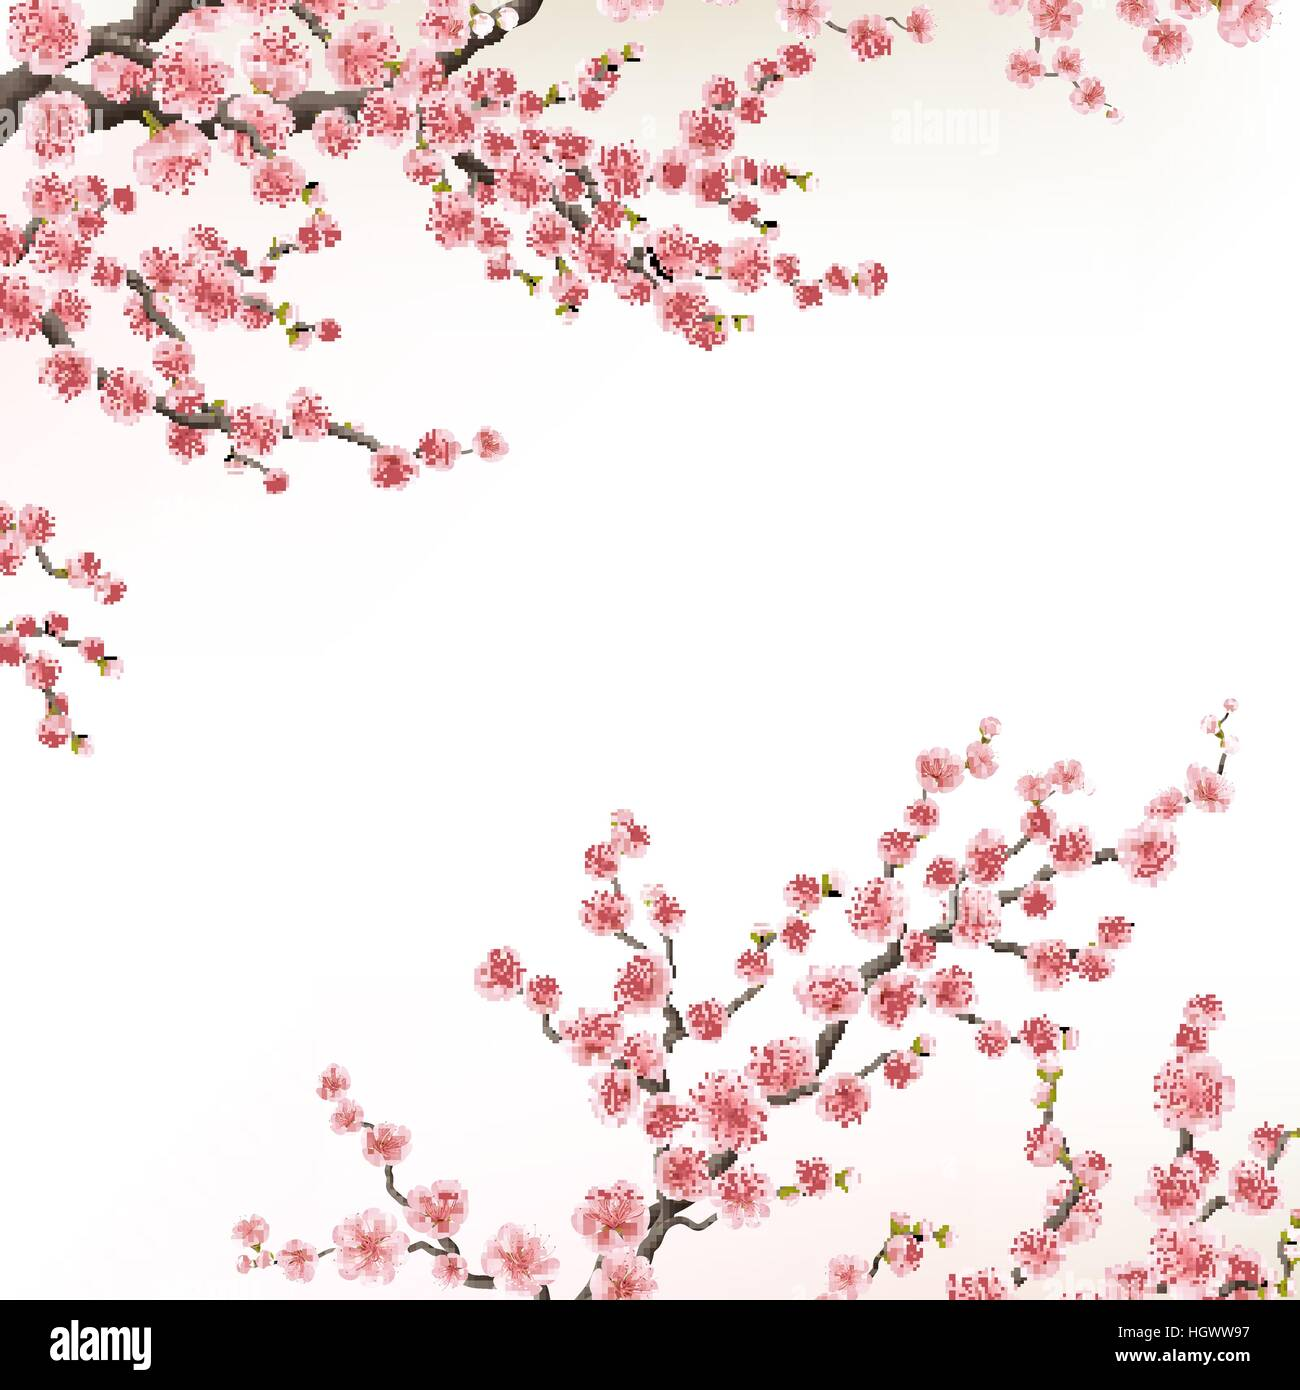 Invitation cards with a blossom sakura eps 10 stock vector art invitation cards with a blossom sakura eps 10 stopboris Image collections